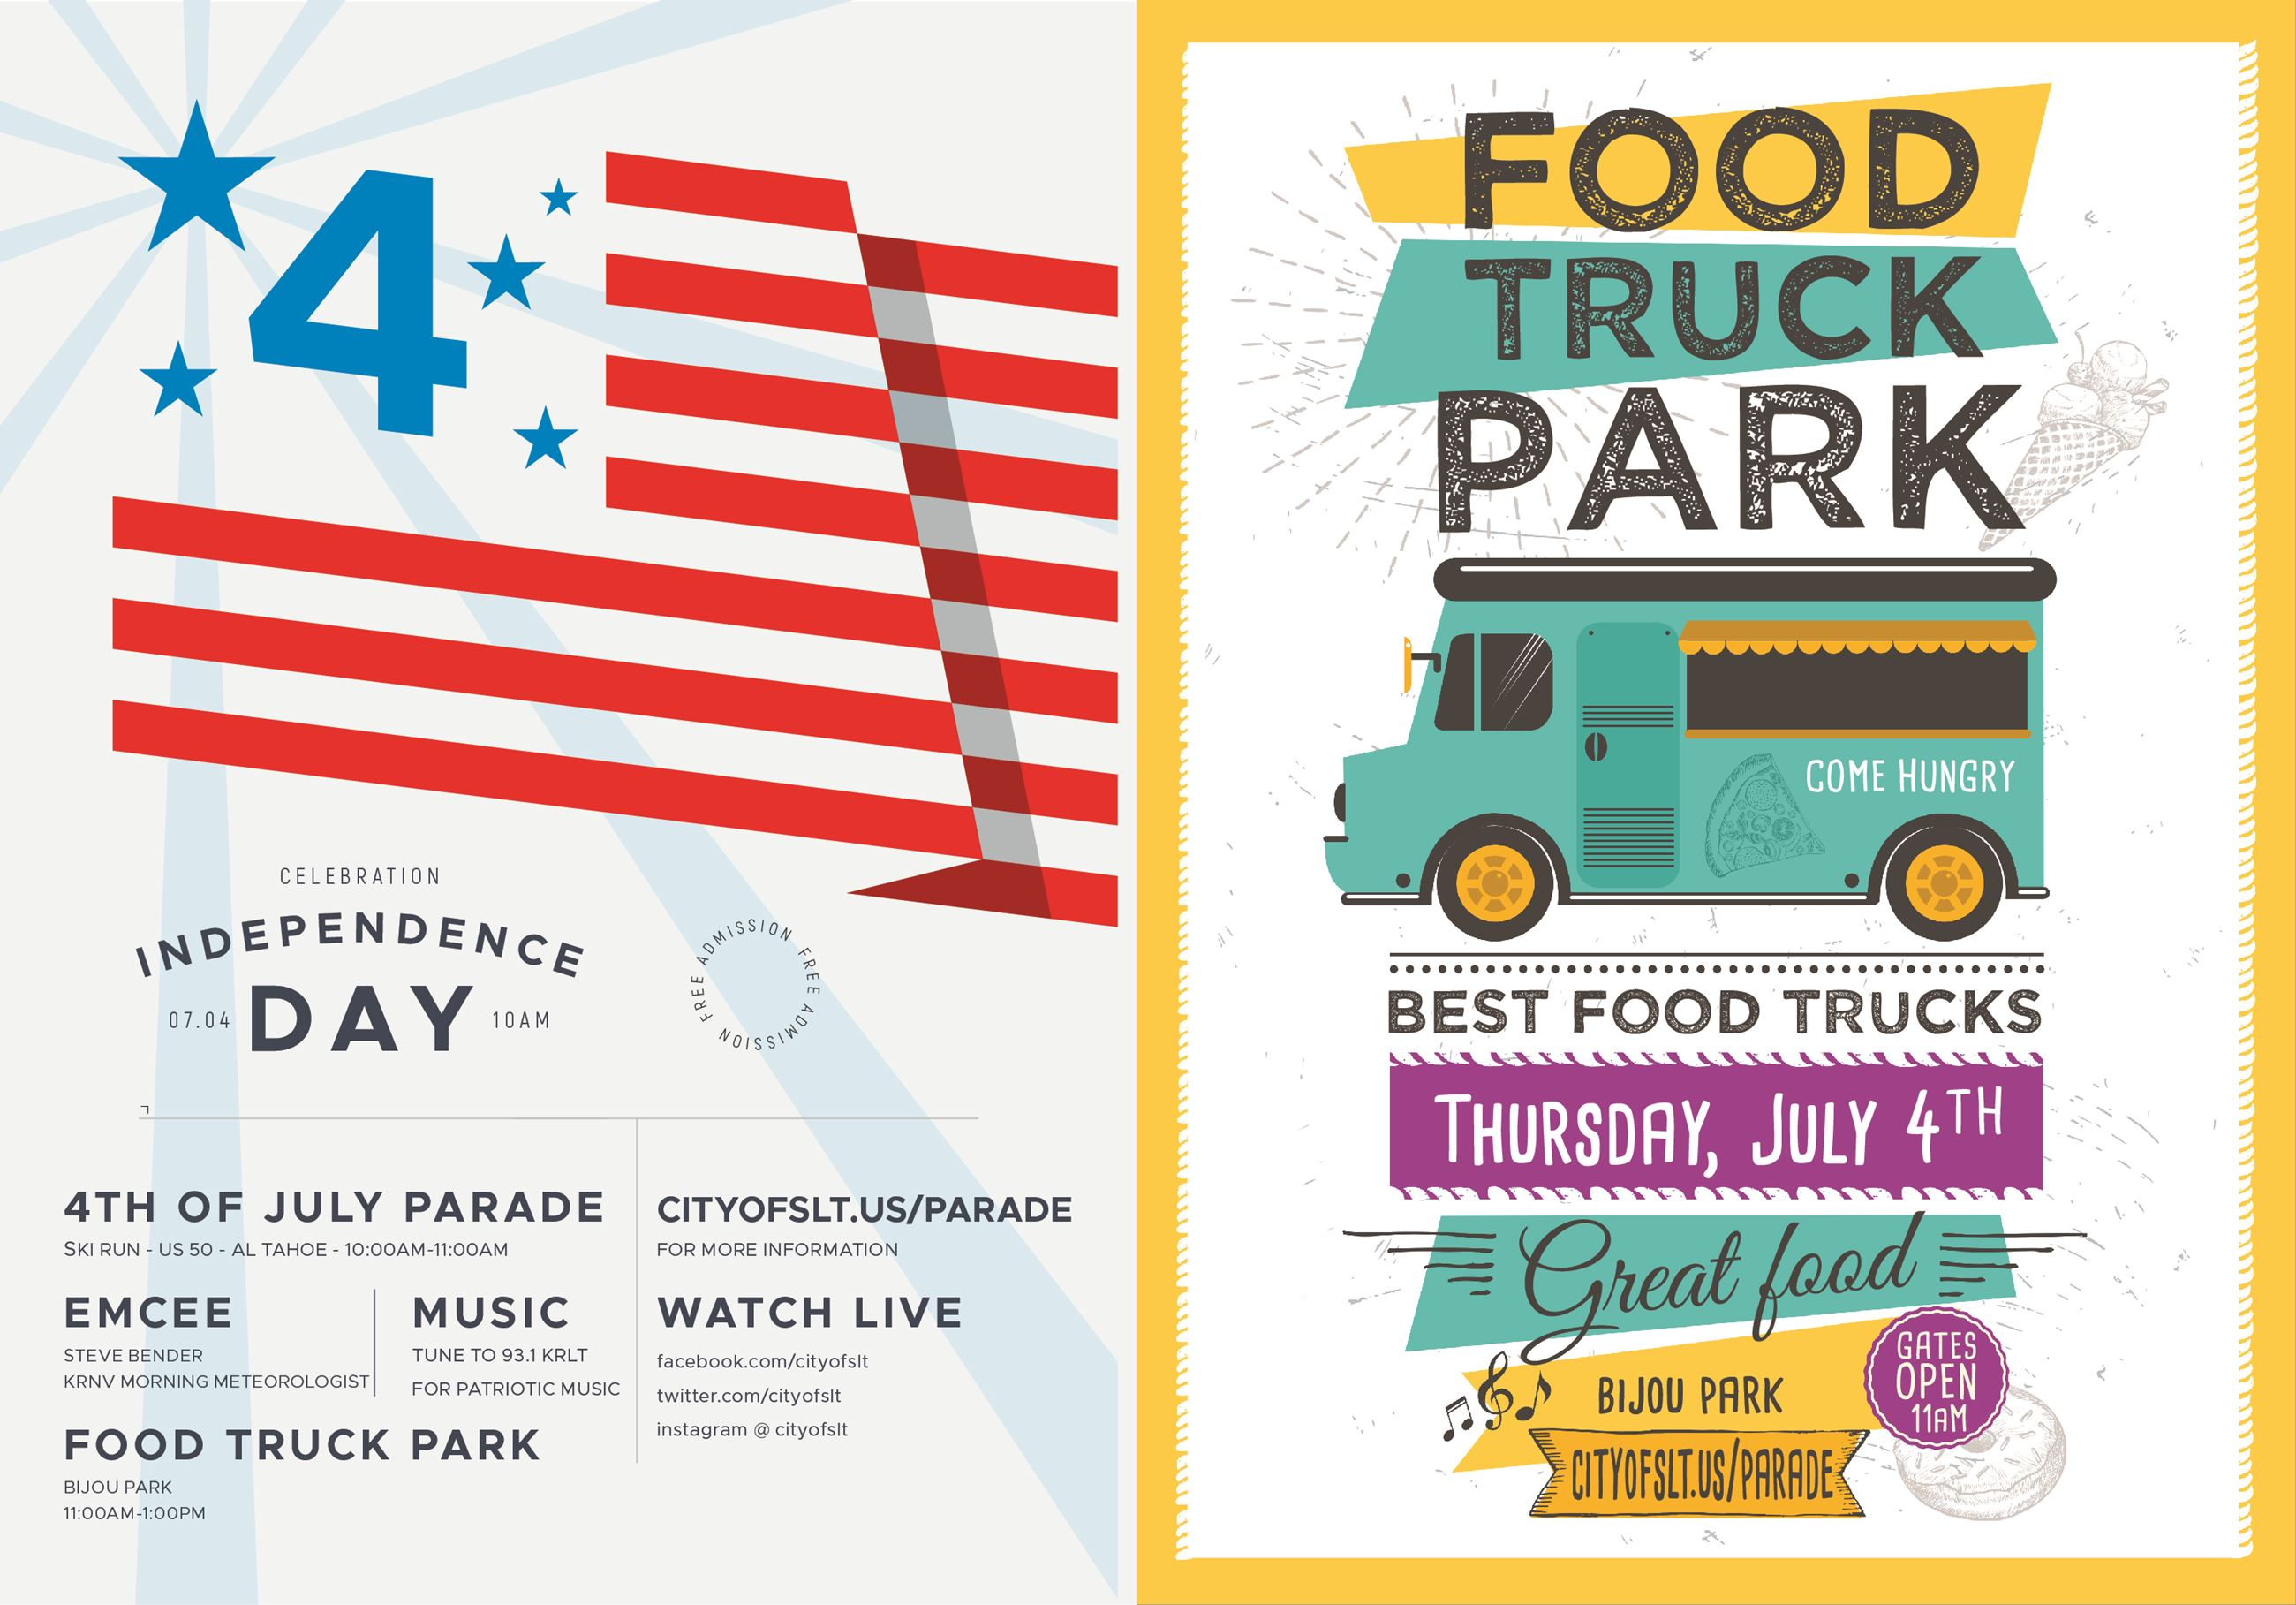 4TH O JULY PARADE AND FOOD TRUCK AD